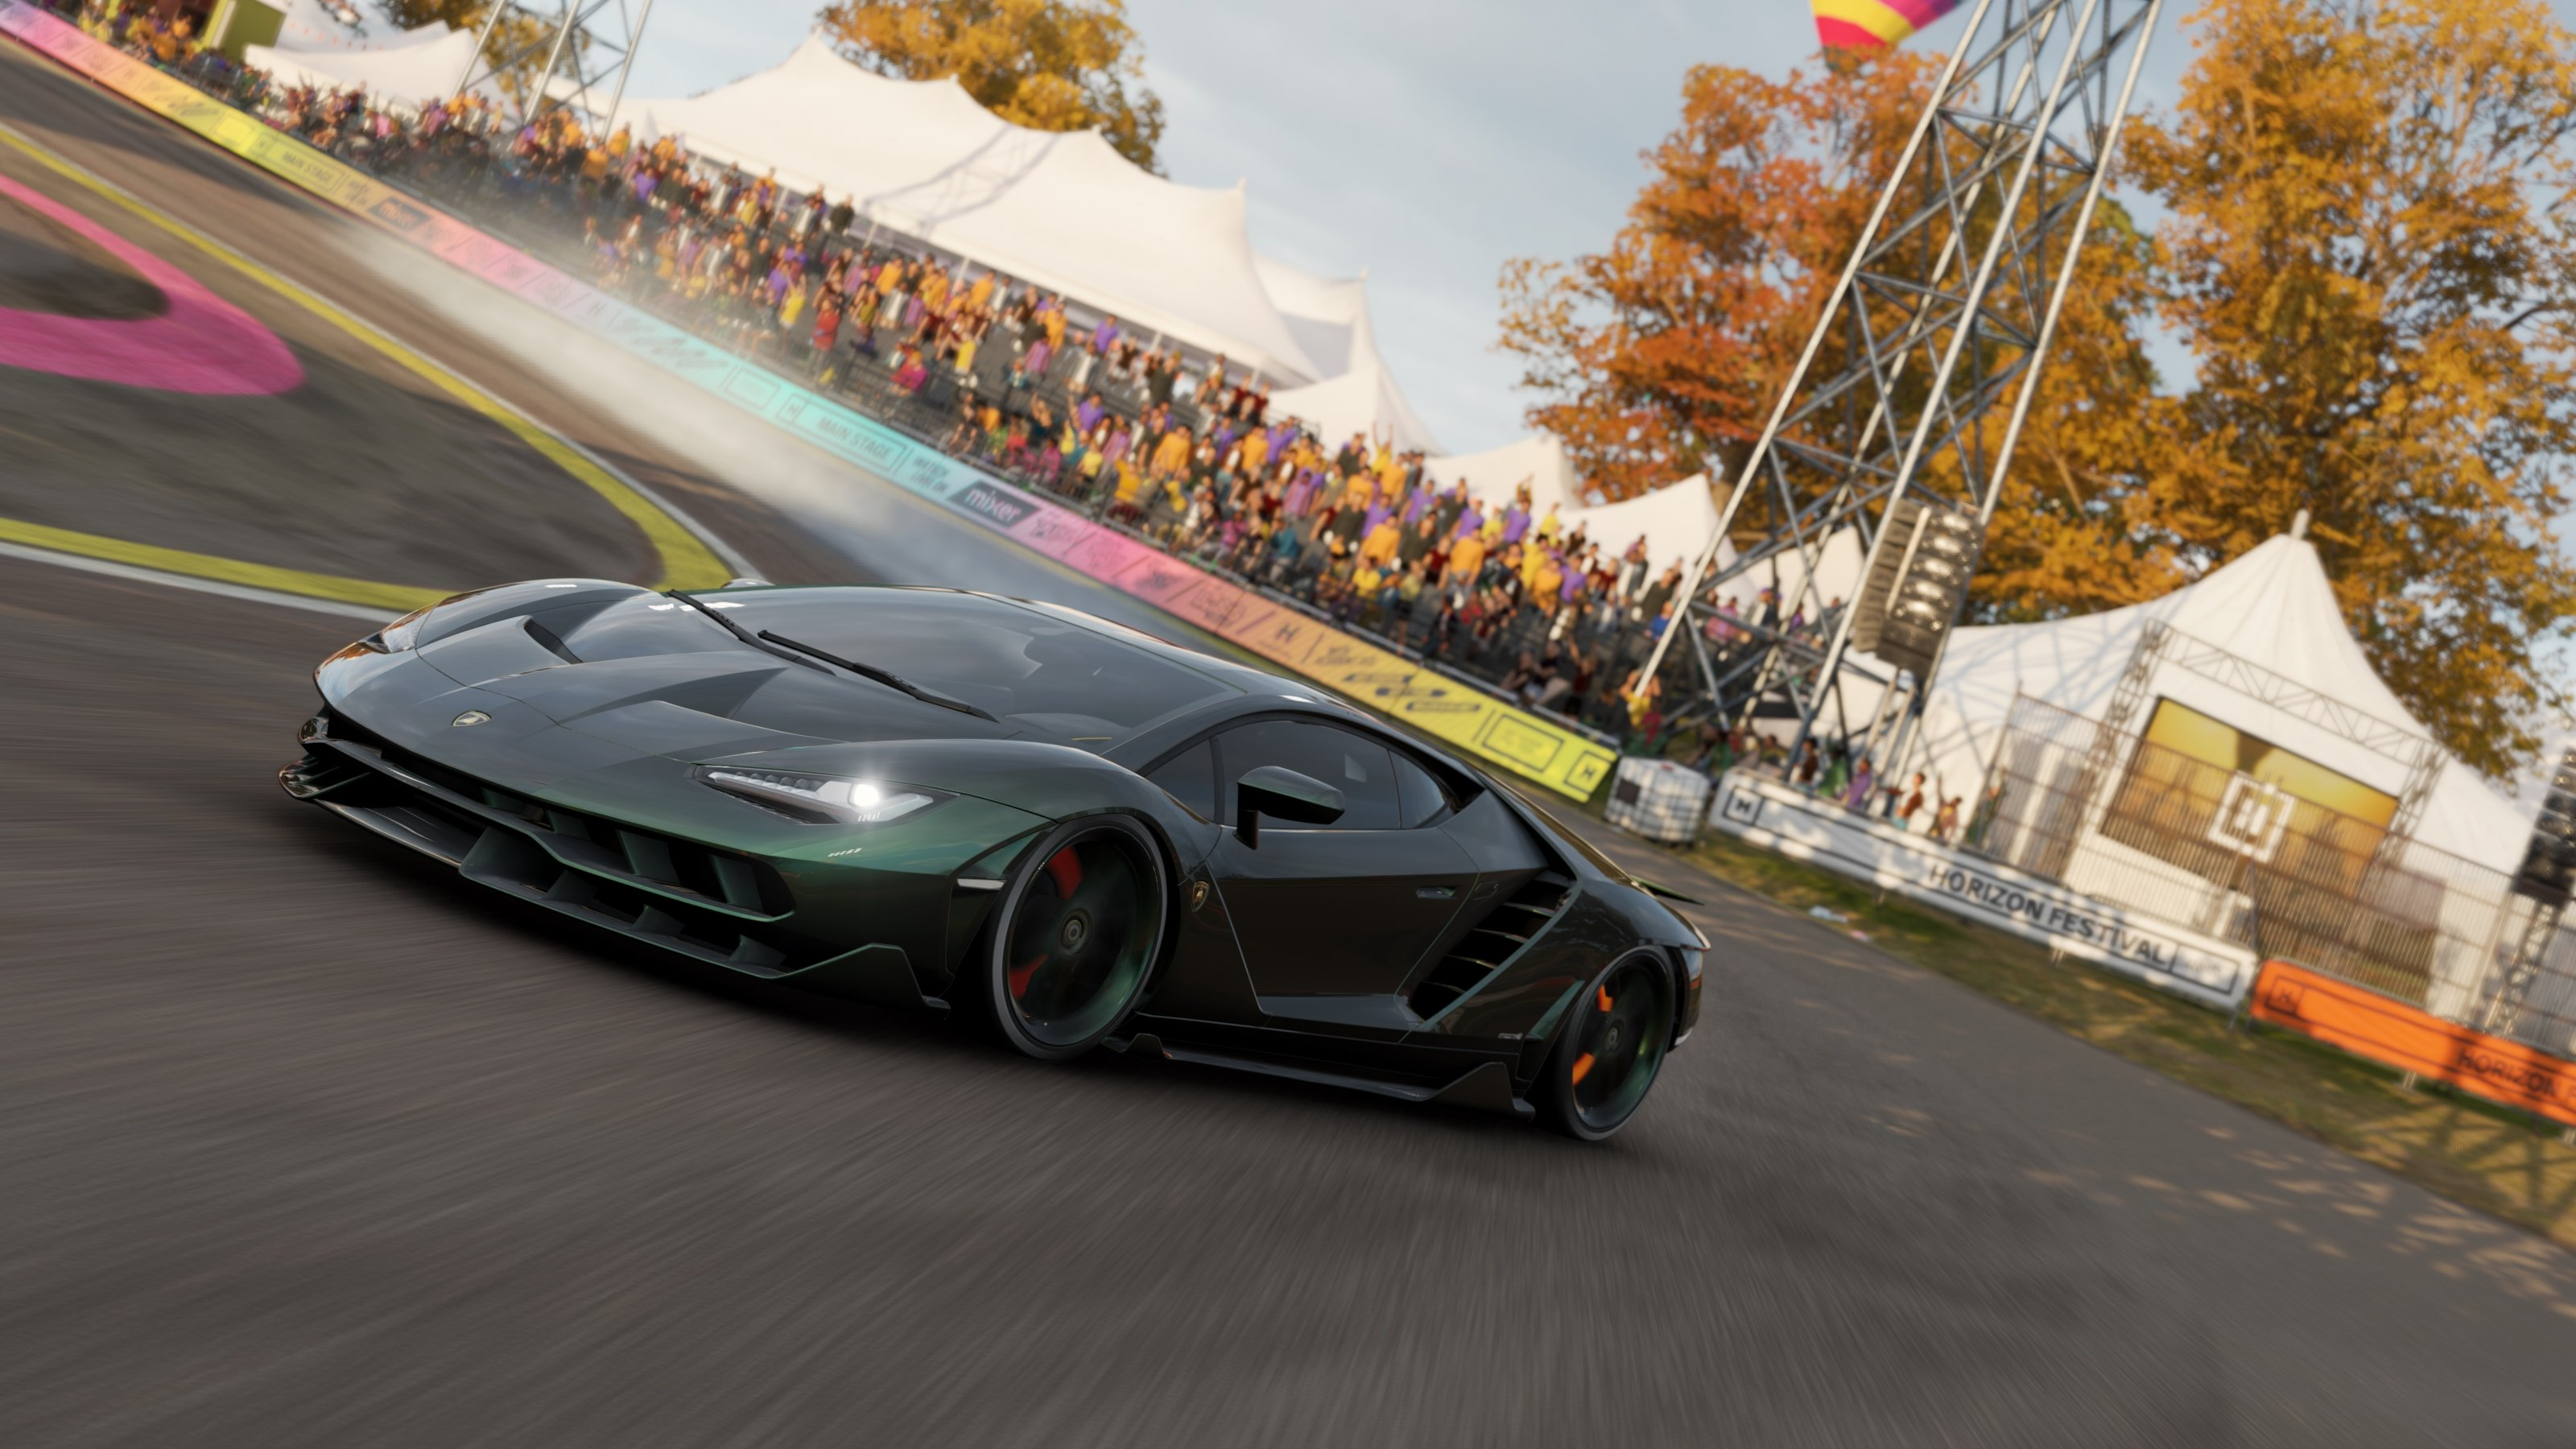 Images of Rare Cars In Forza Horizon 4 - #rock-cafe